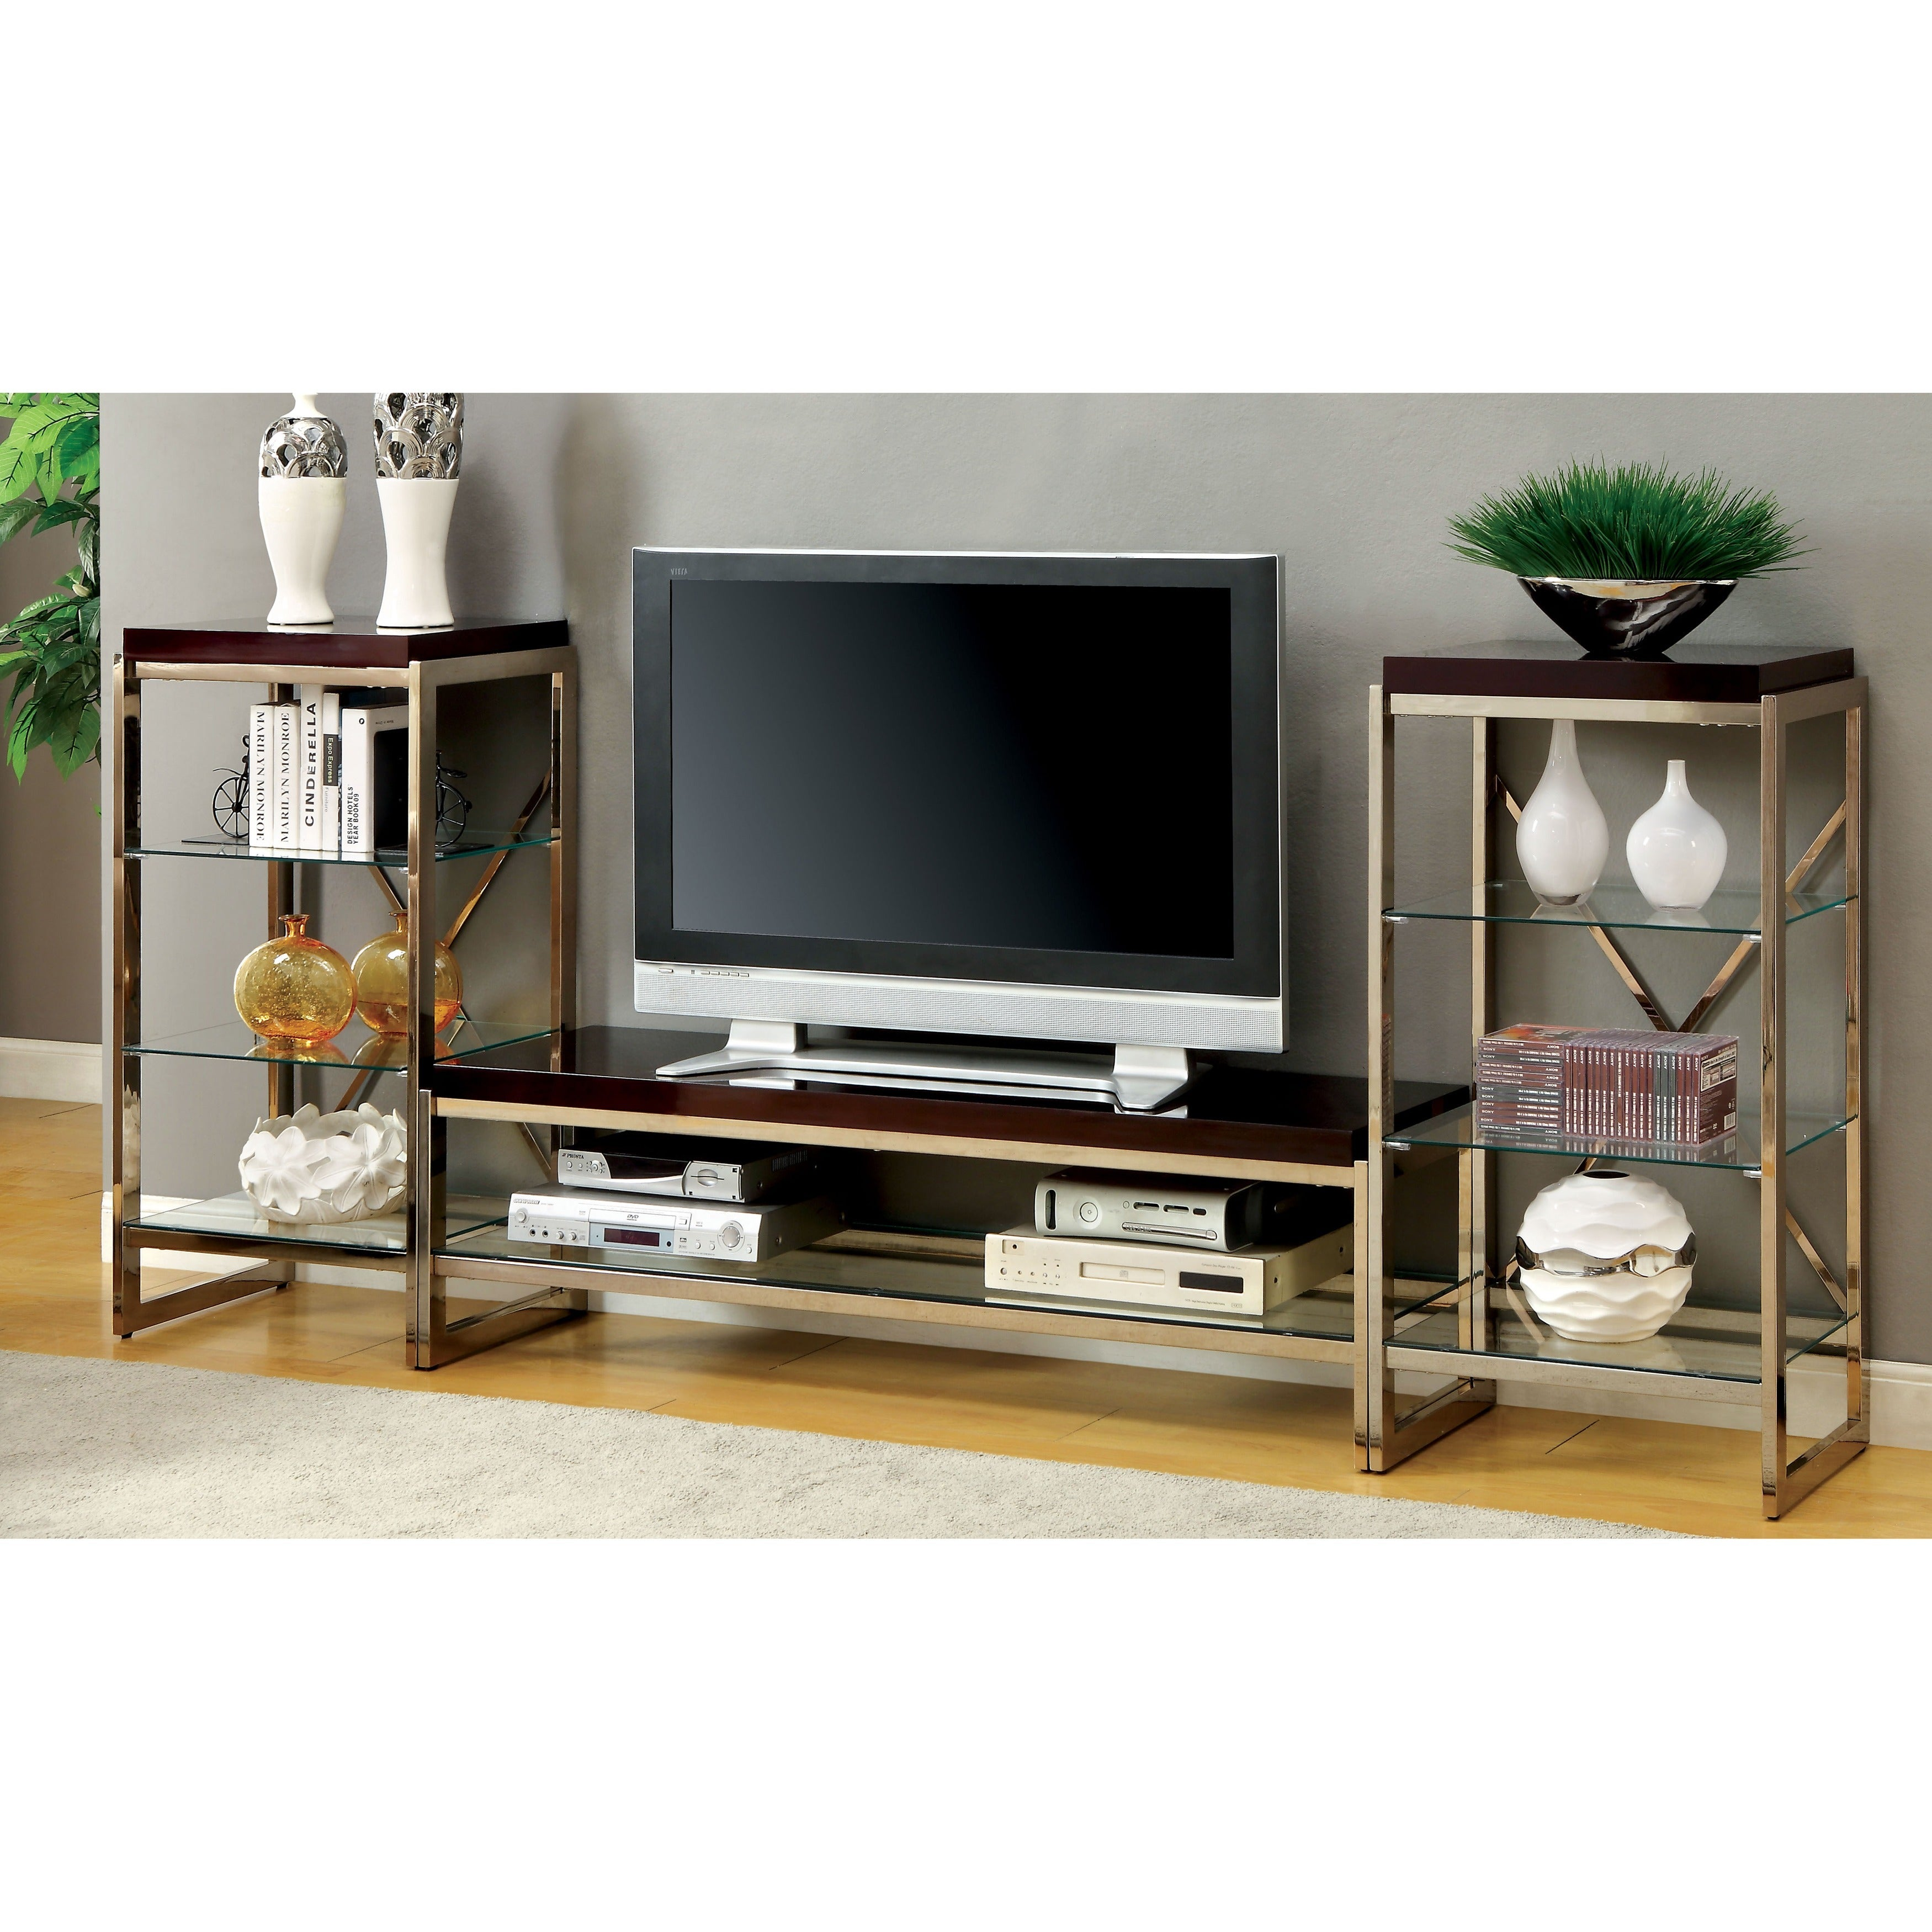 Expo Tv Stands : Trade show booth lcd tv stand u stock photo newb